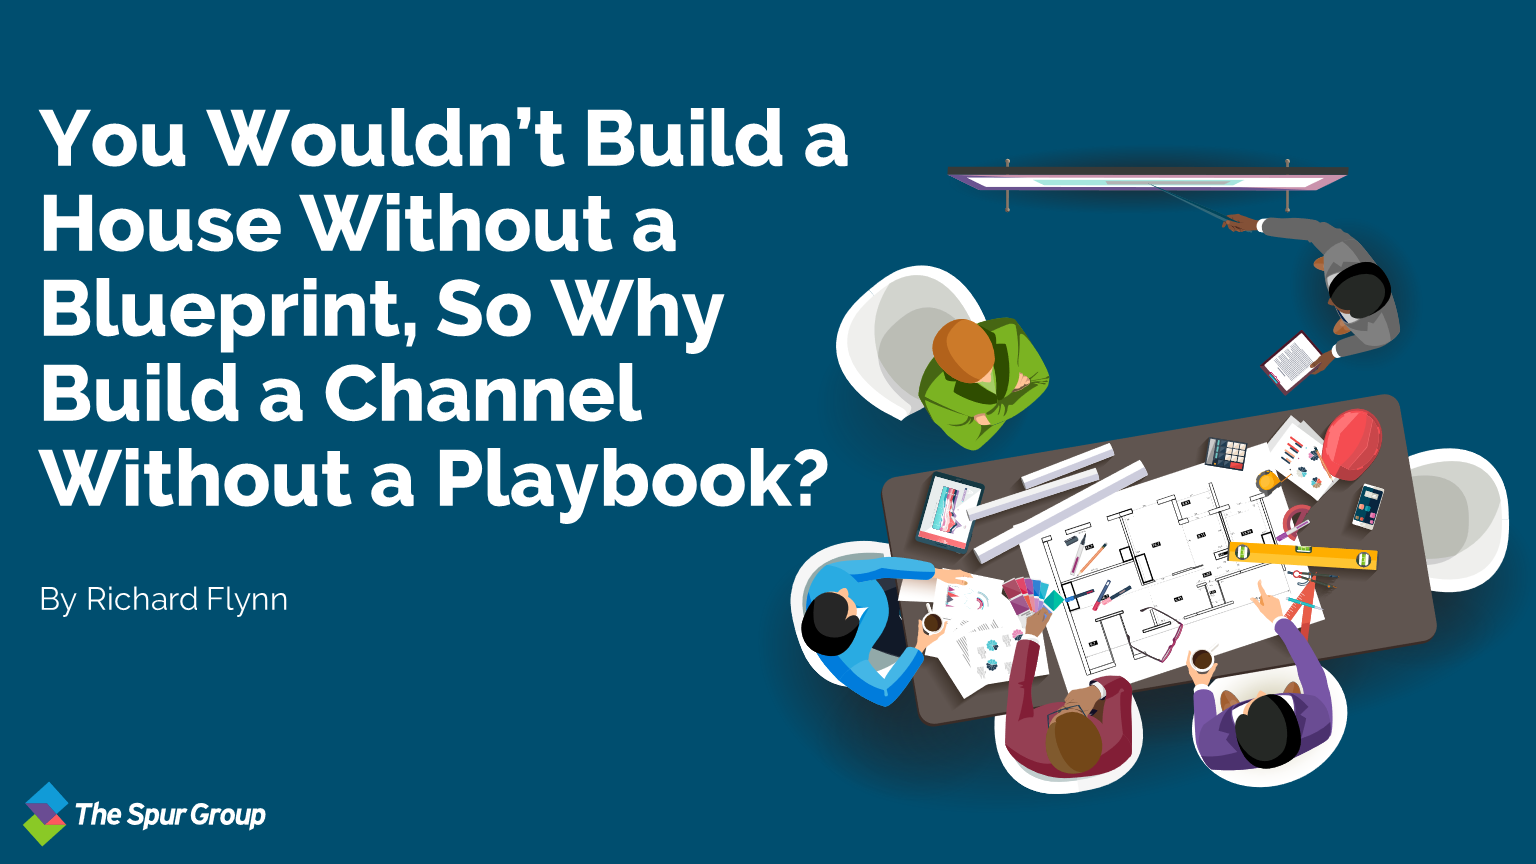 You Wouldn't Build a House Without a Blueprint, So Why Build a Channel Without a Playbook? Featured Image